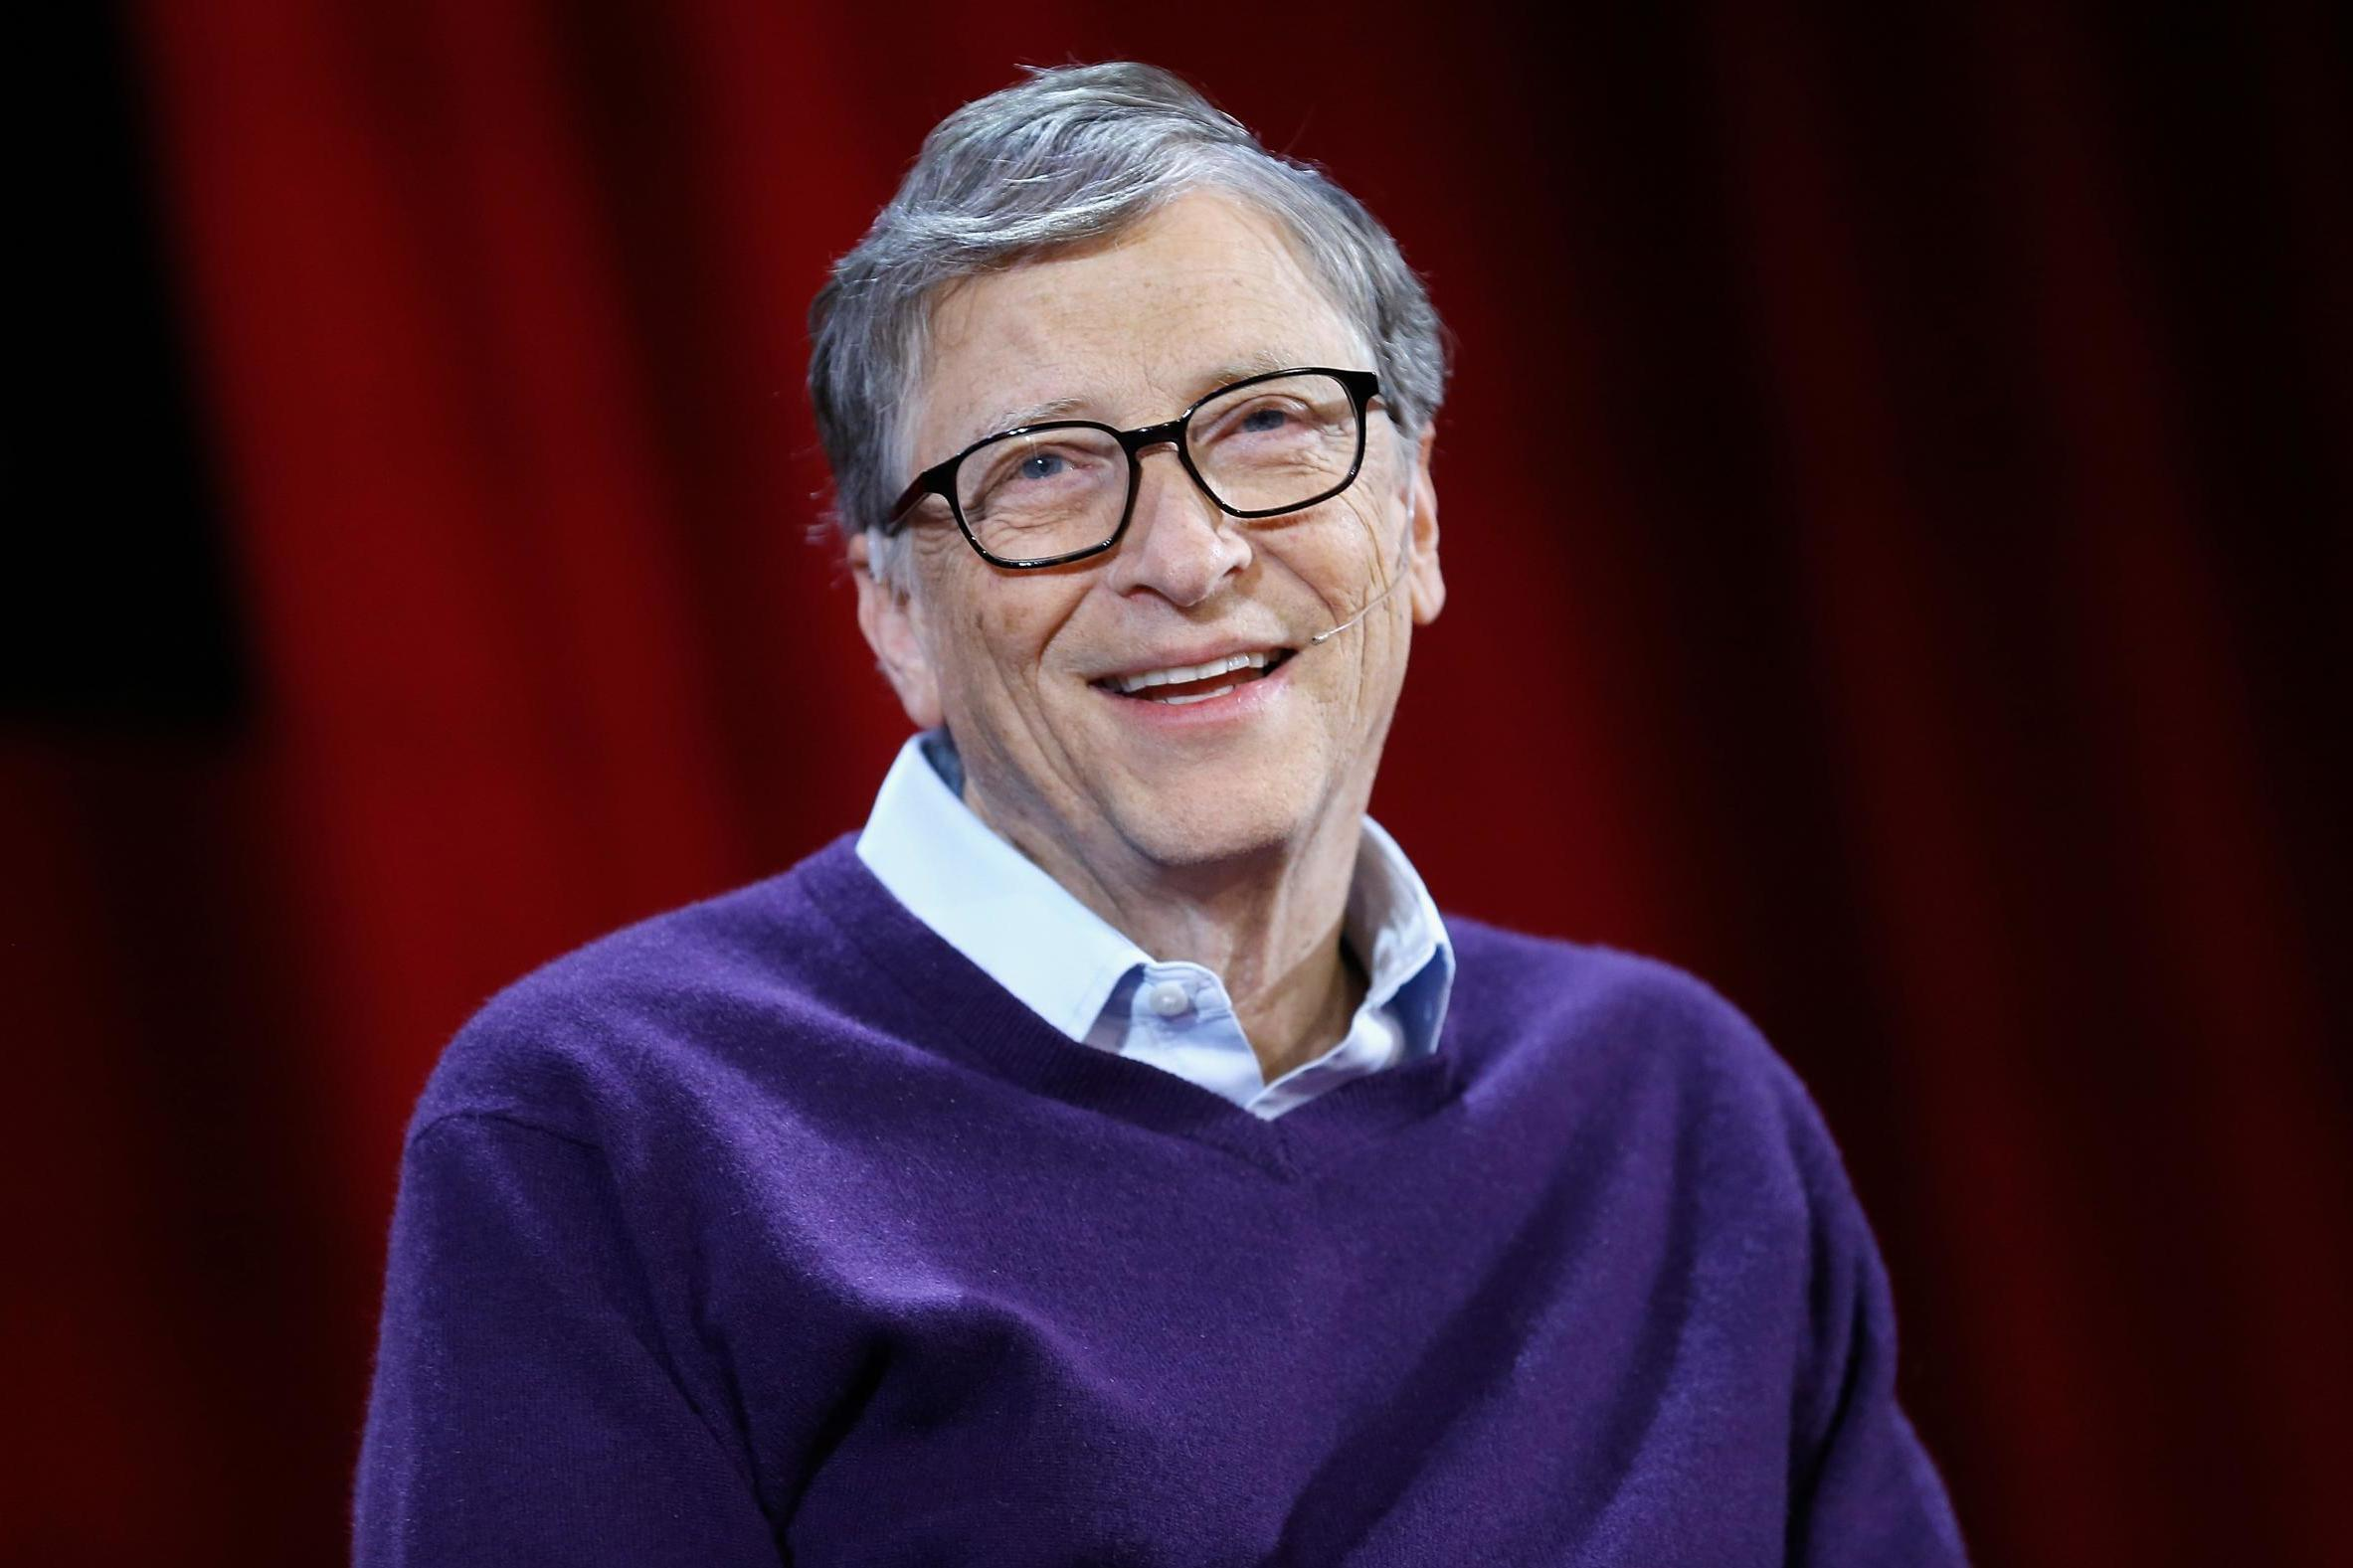 Bill Gates says letting Google launch Android was his 'greatest mistake'